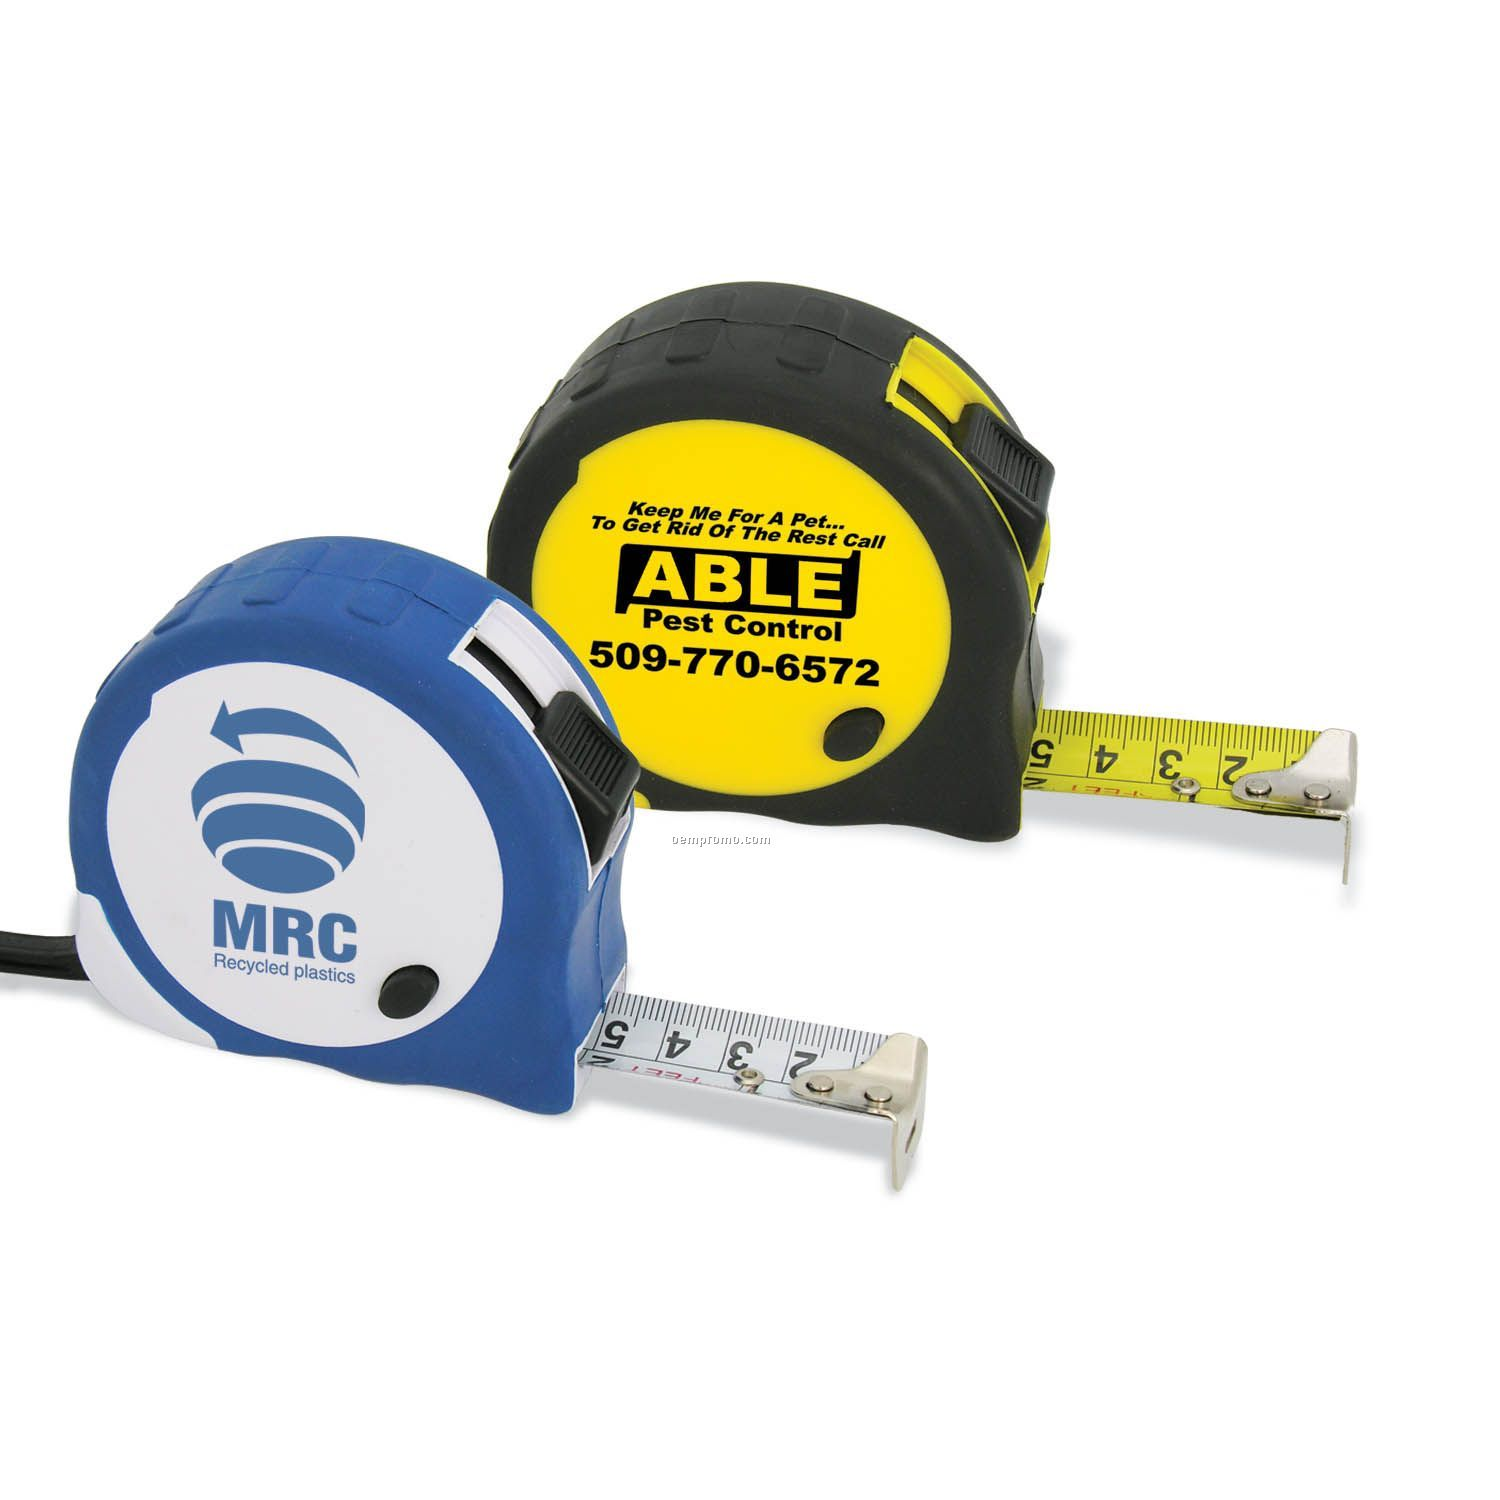 Construction Pro 10' Tape Measure